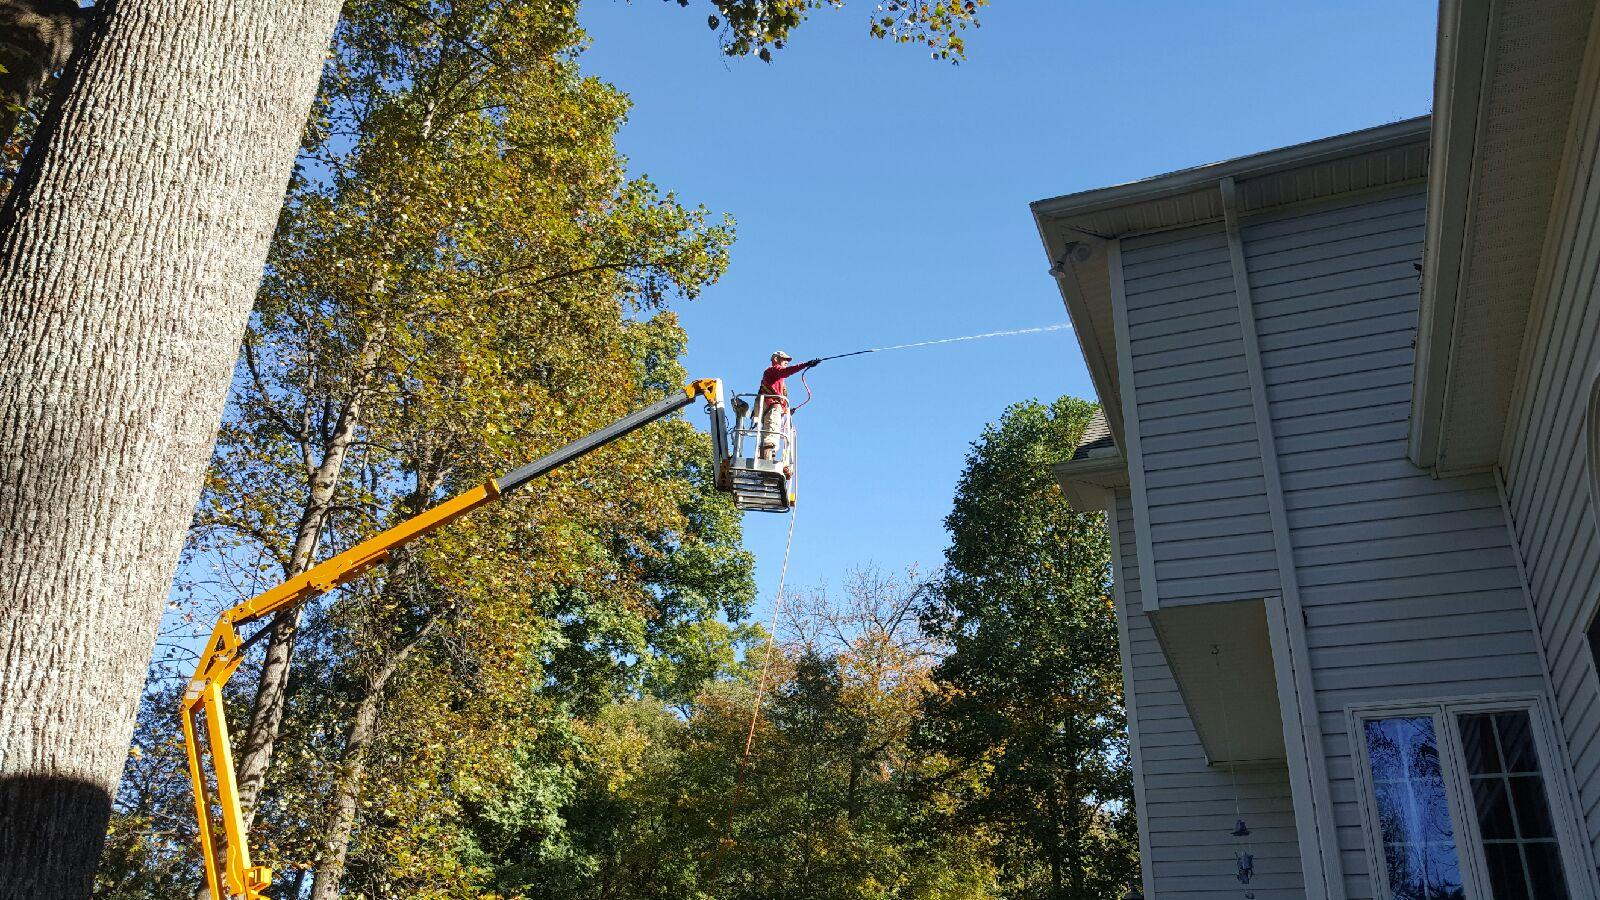 Boom Lift | House Washing Contractor in Martinsburg WV